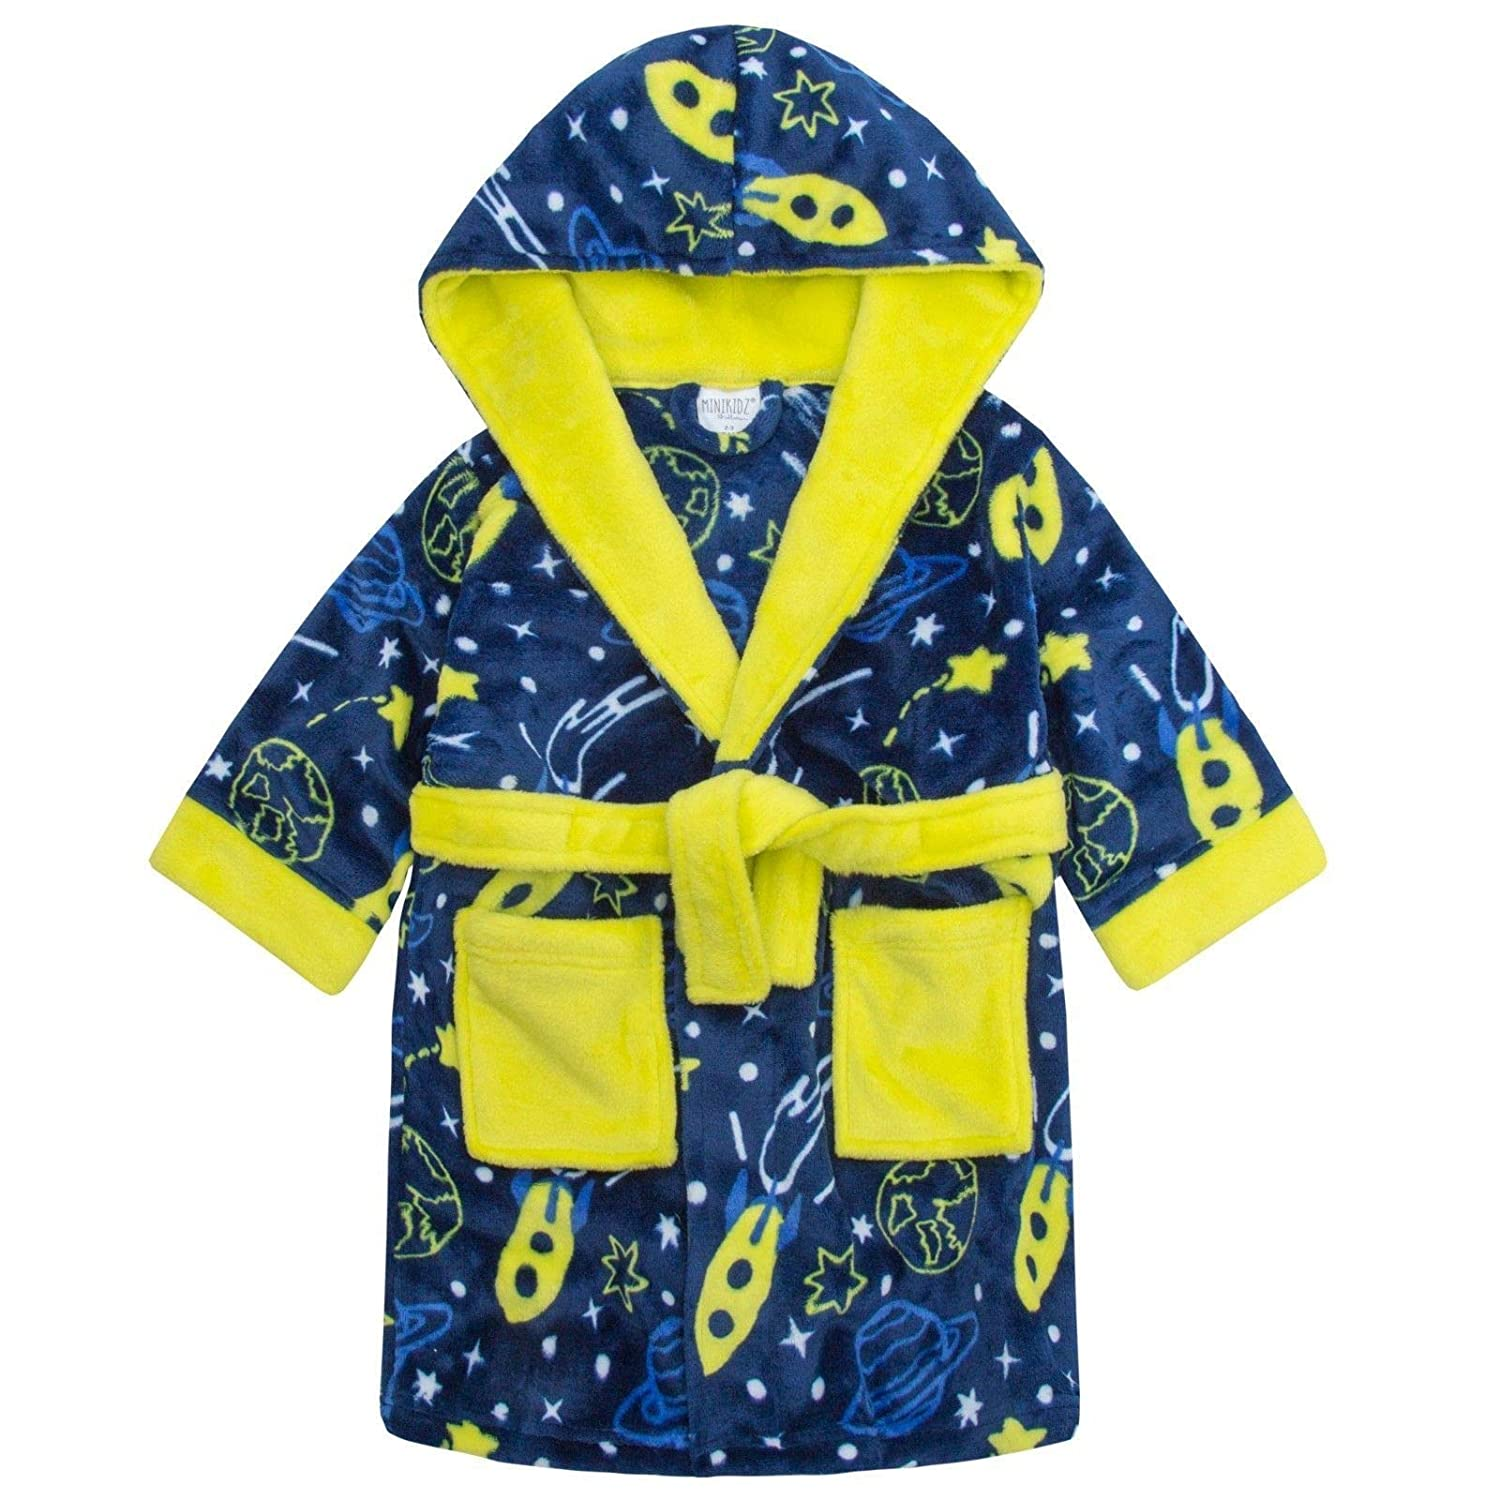 Boys Novelty Printed Dressing Gowns Bathrobes 2-6 Years